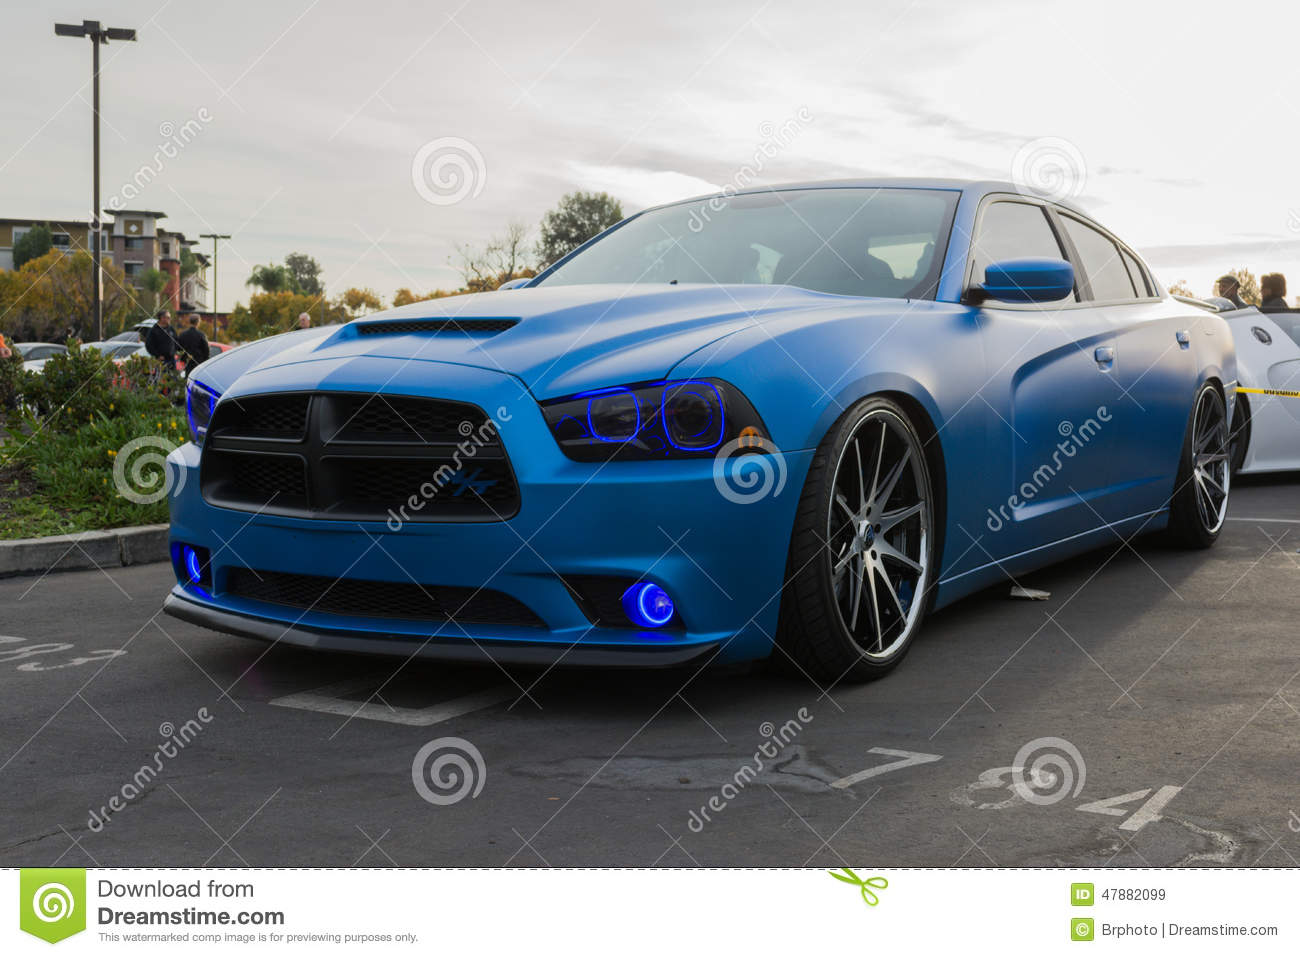 Custom Dodge Charger Rt On Display Editorial Stock Image Image Of Auto Engine 47882099